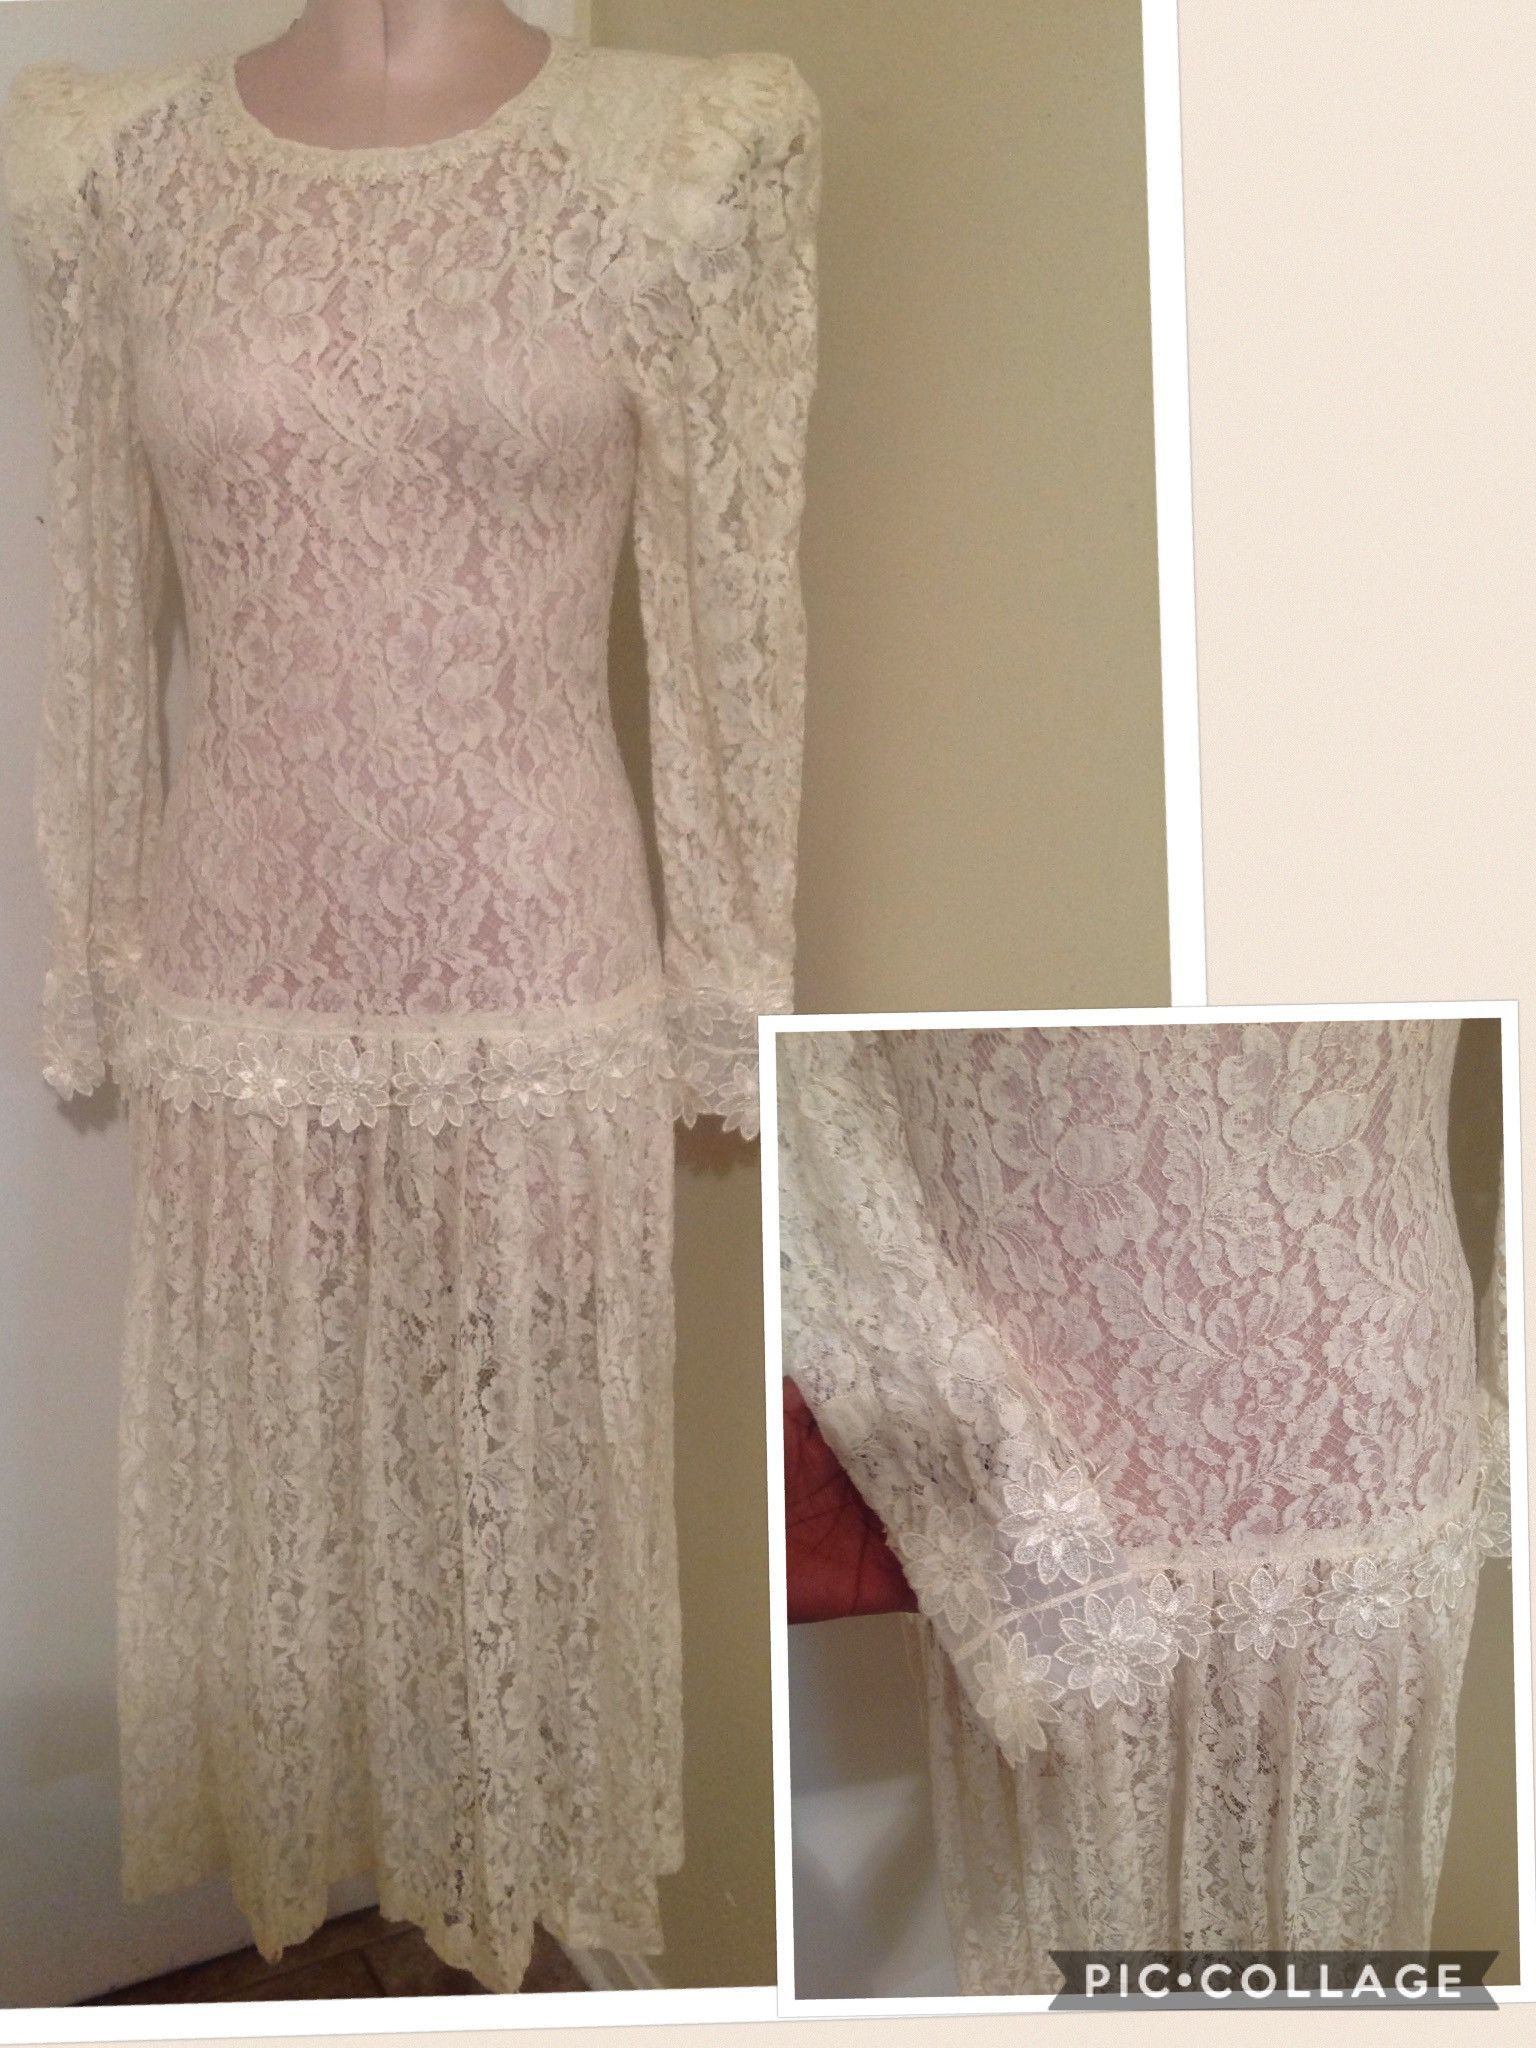 Beautiful lace off white dress best fit 3/4 5/6